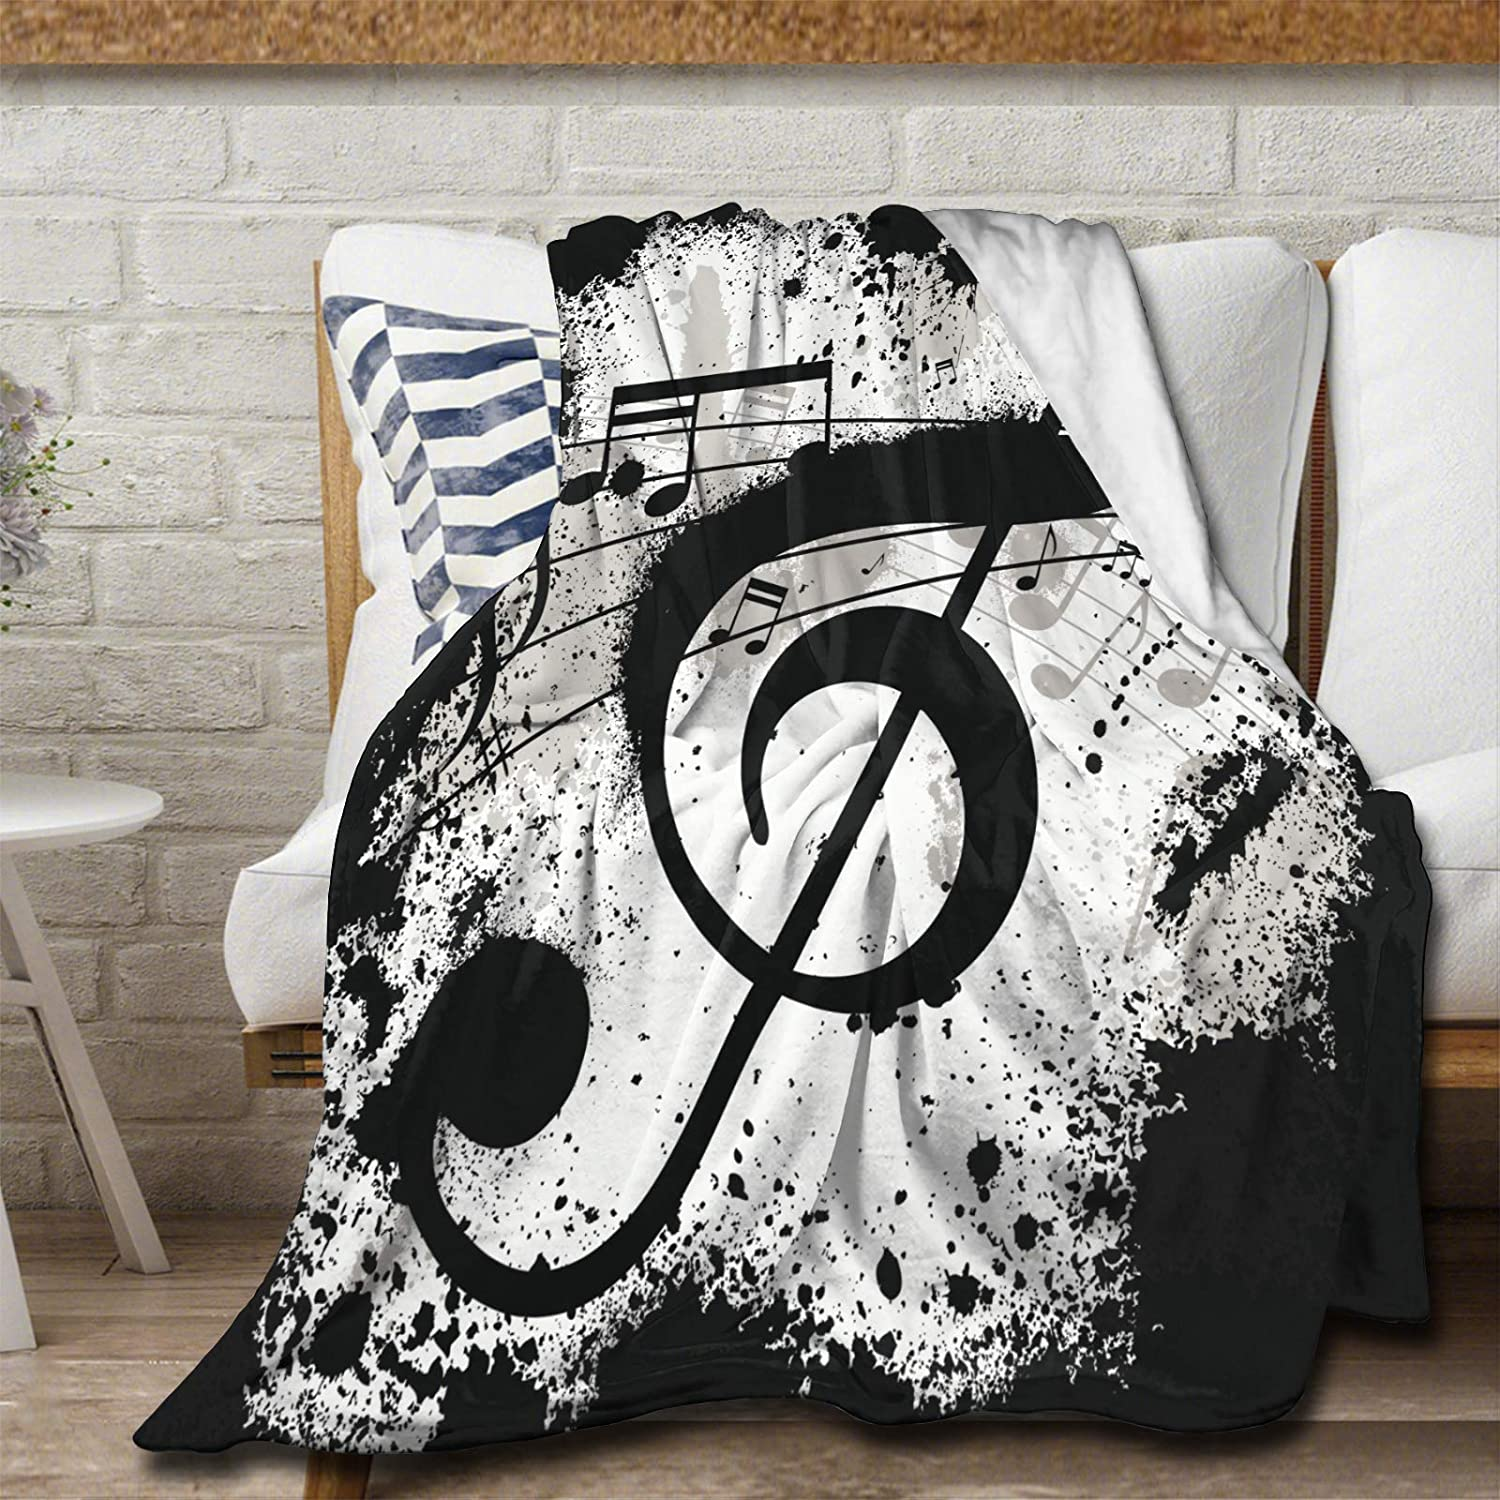 Avalokitesvara Music Note Free shipping Black Excellent and Flannel Blanket Throw White